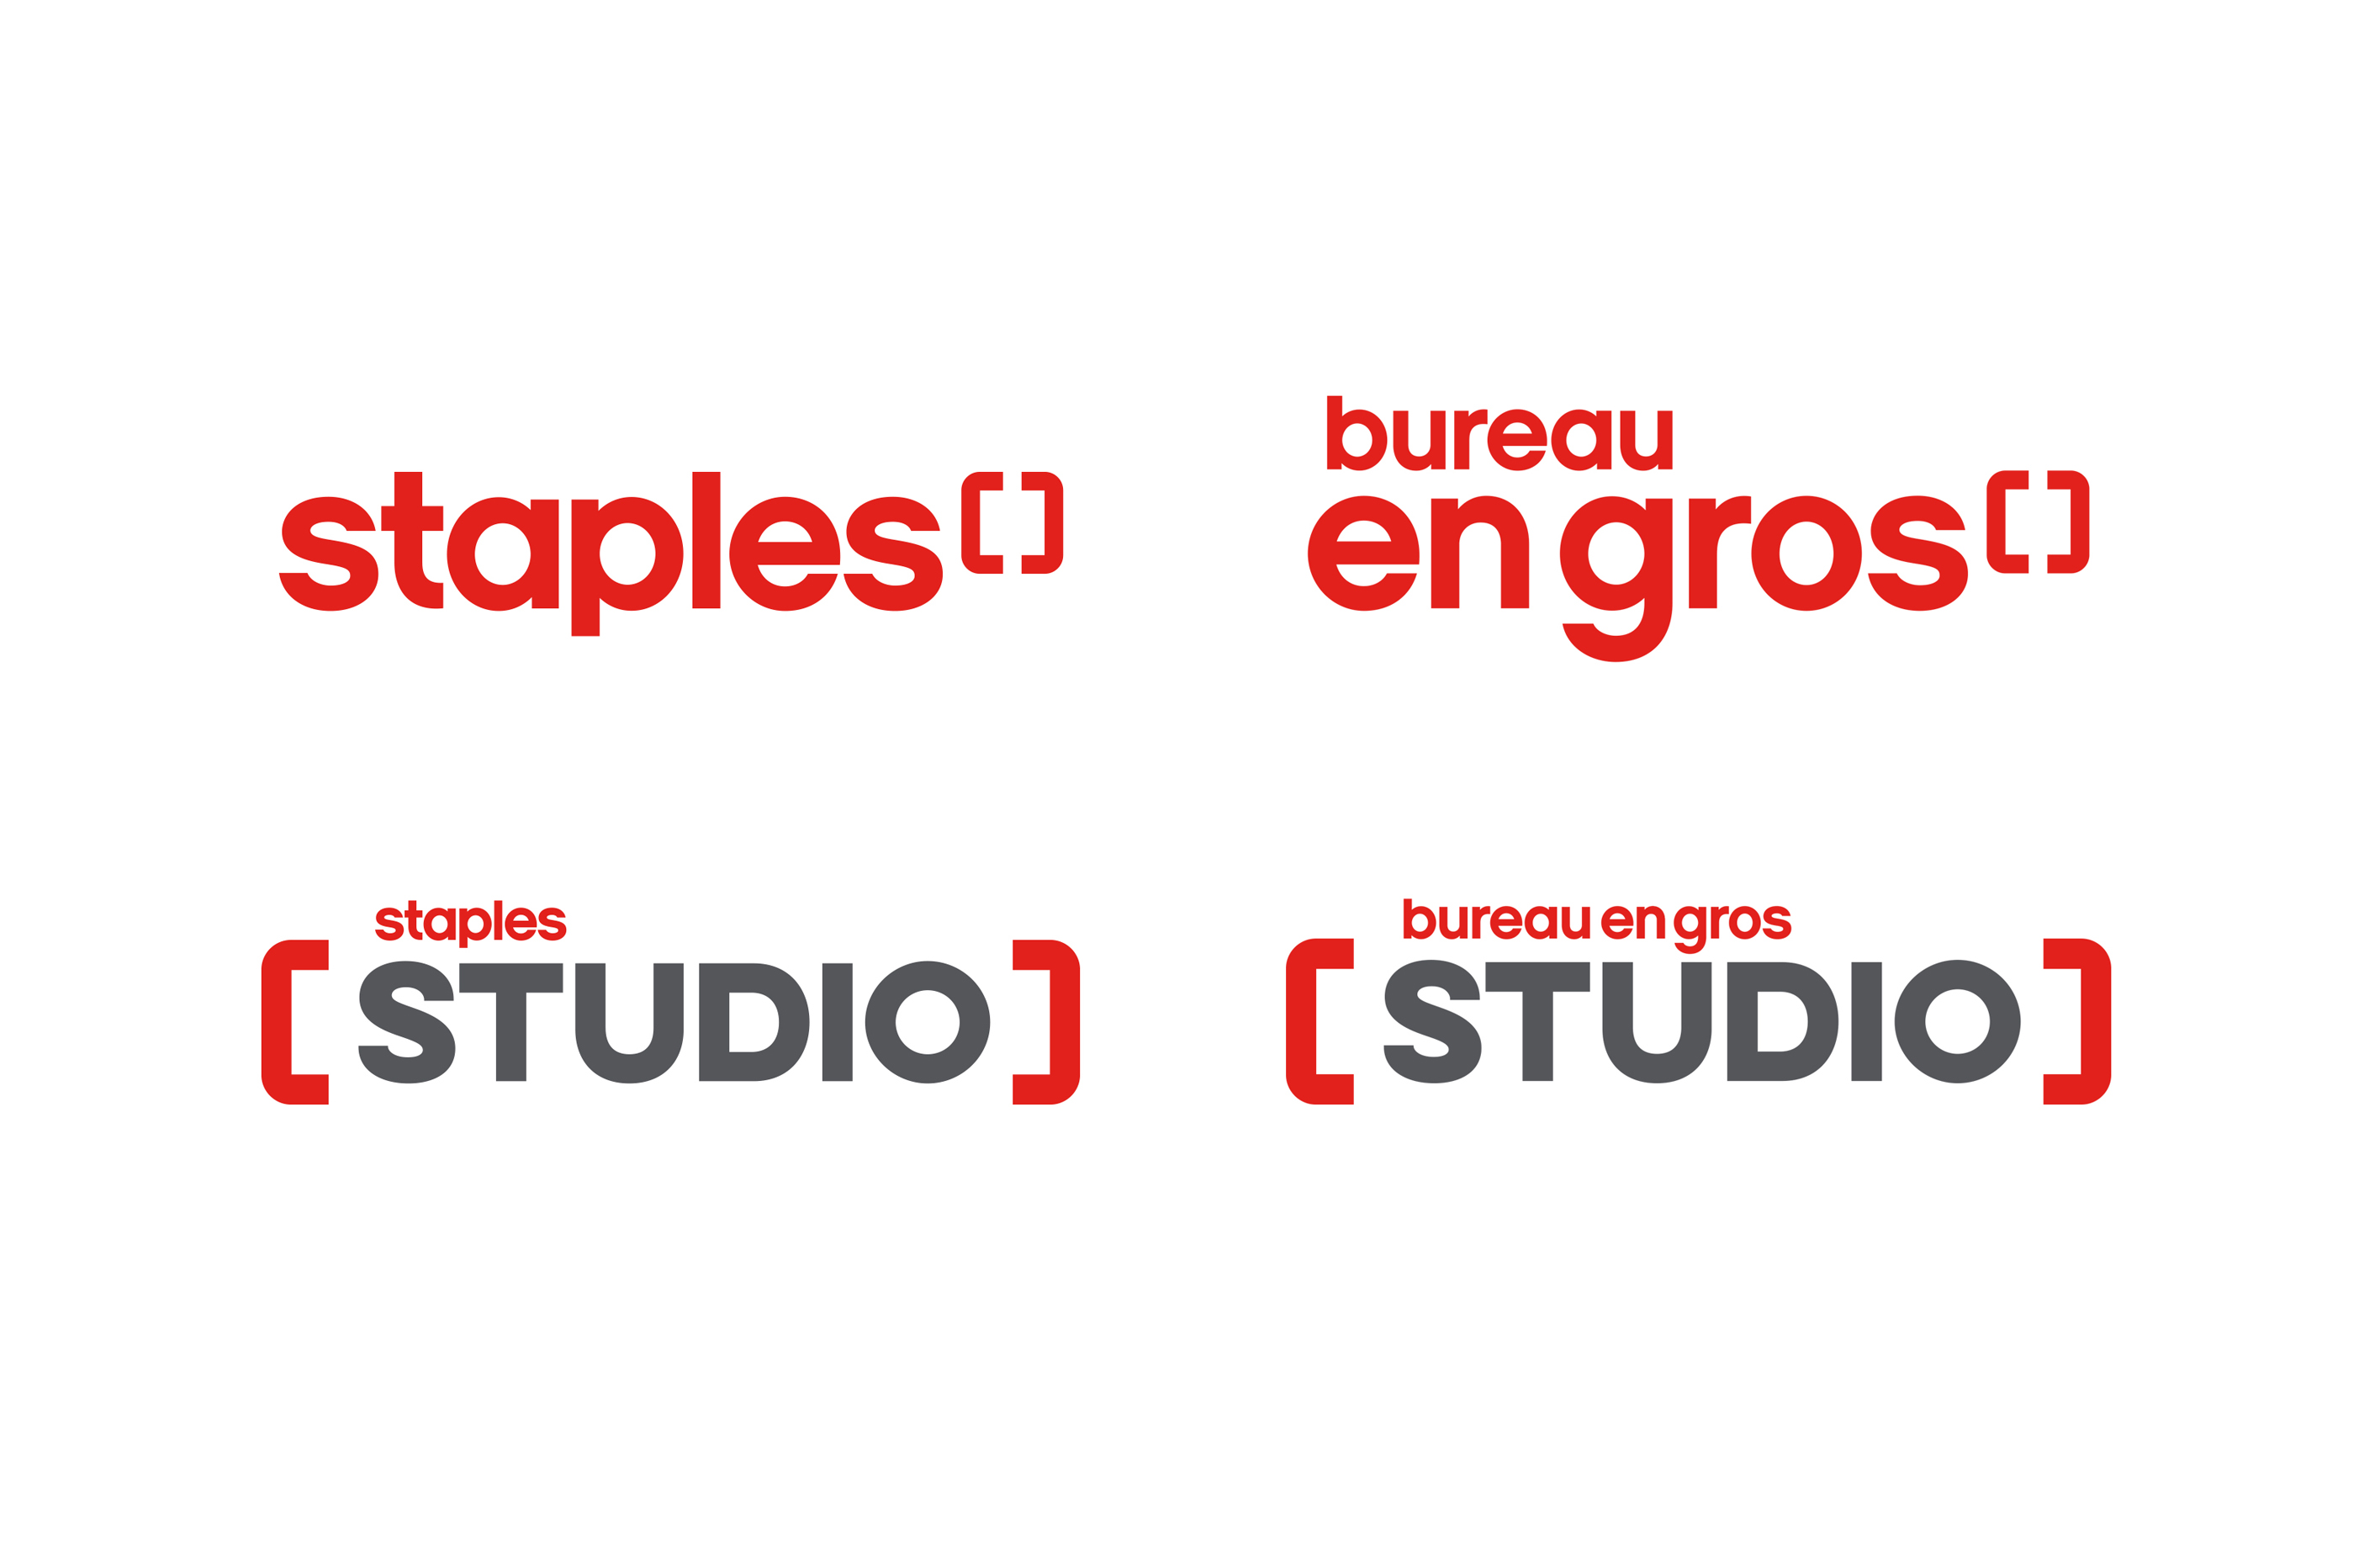 Staples Studio